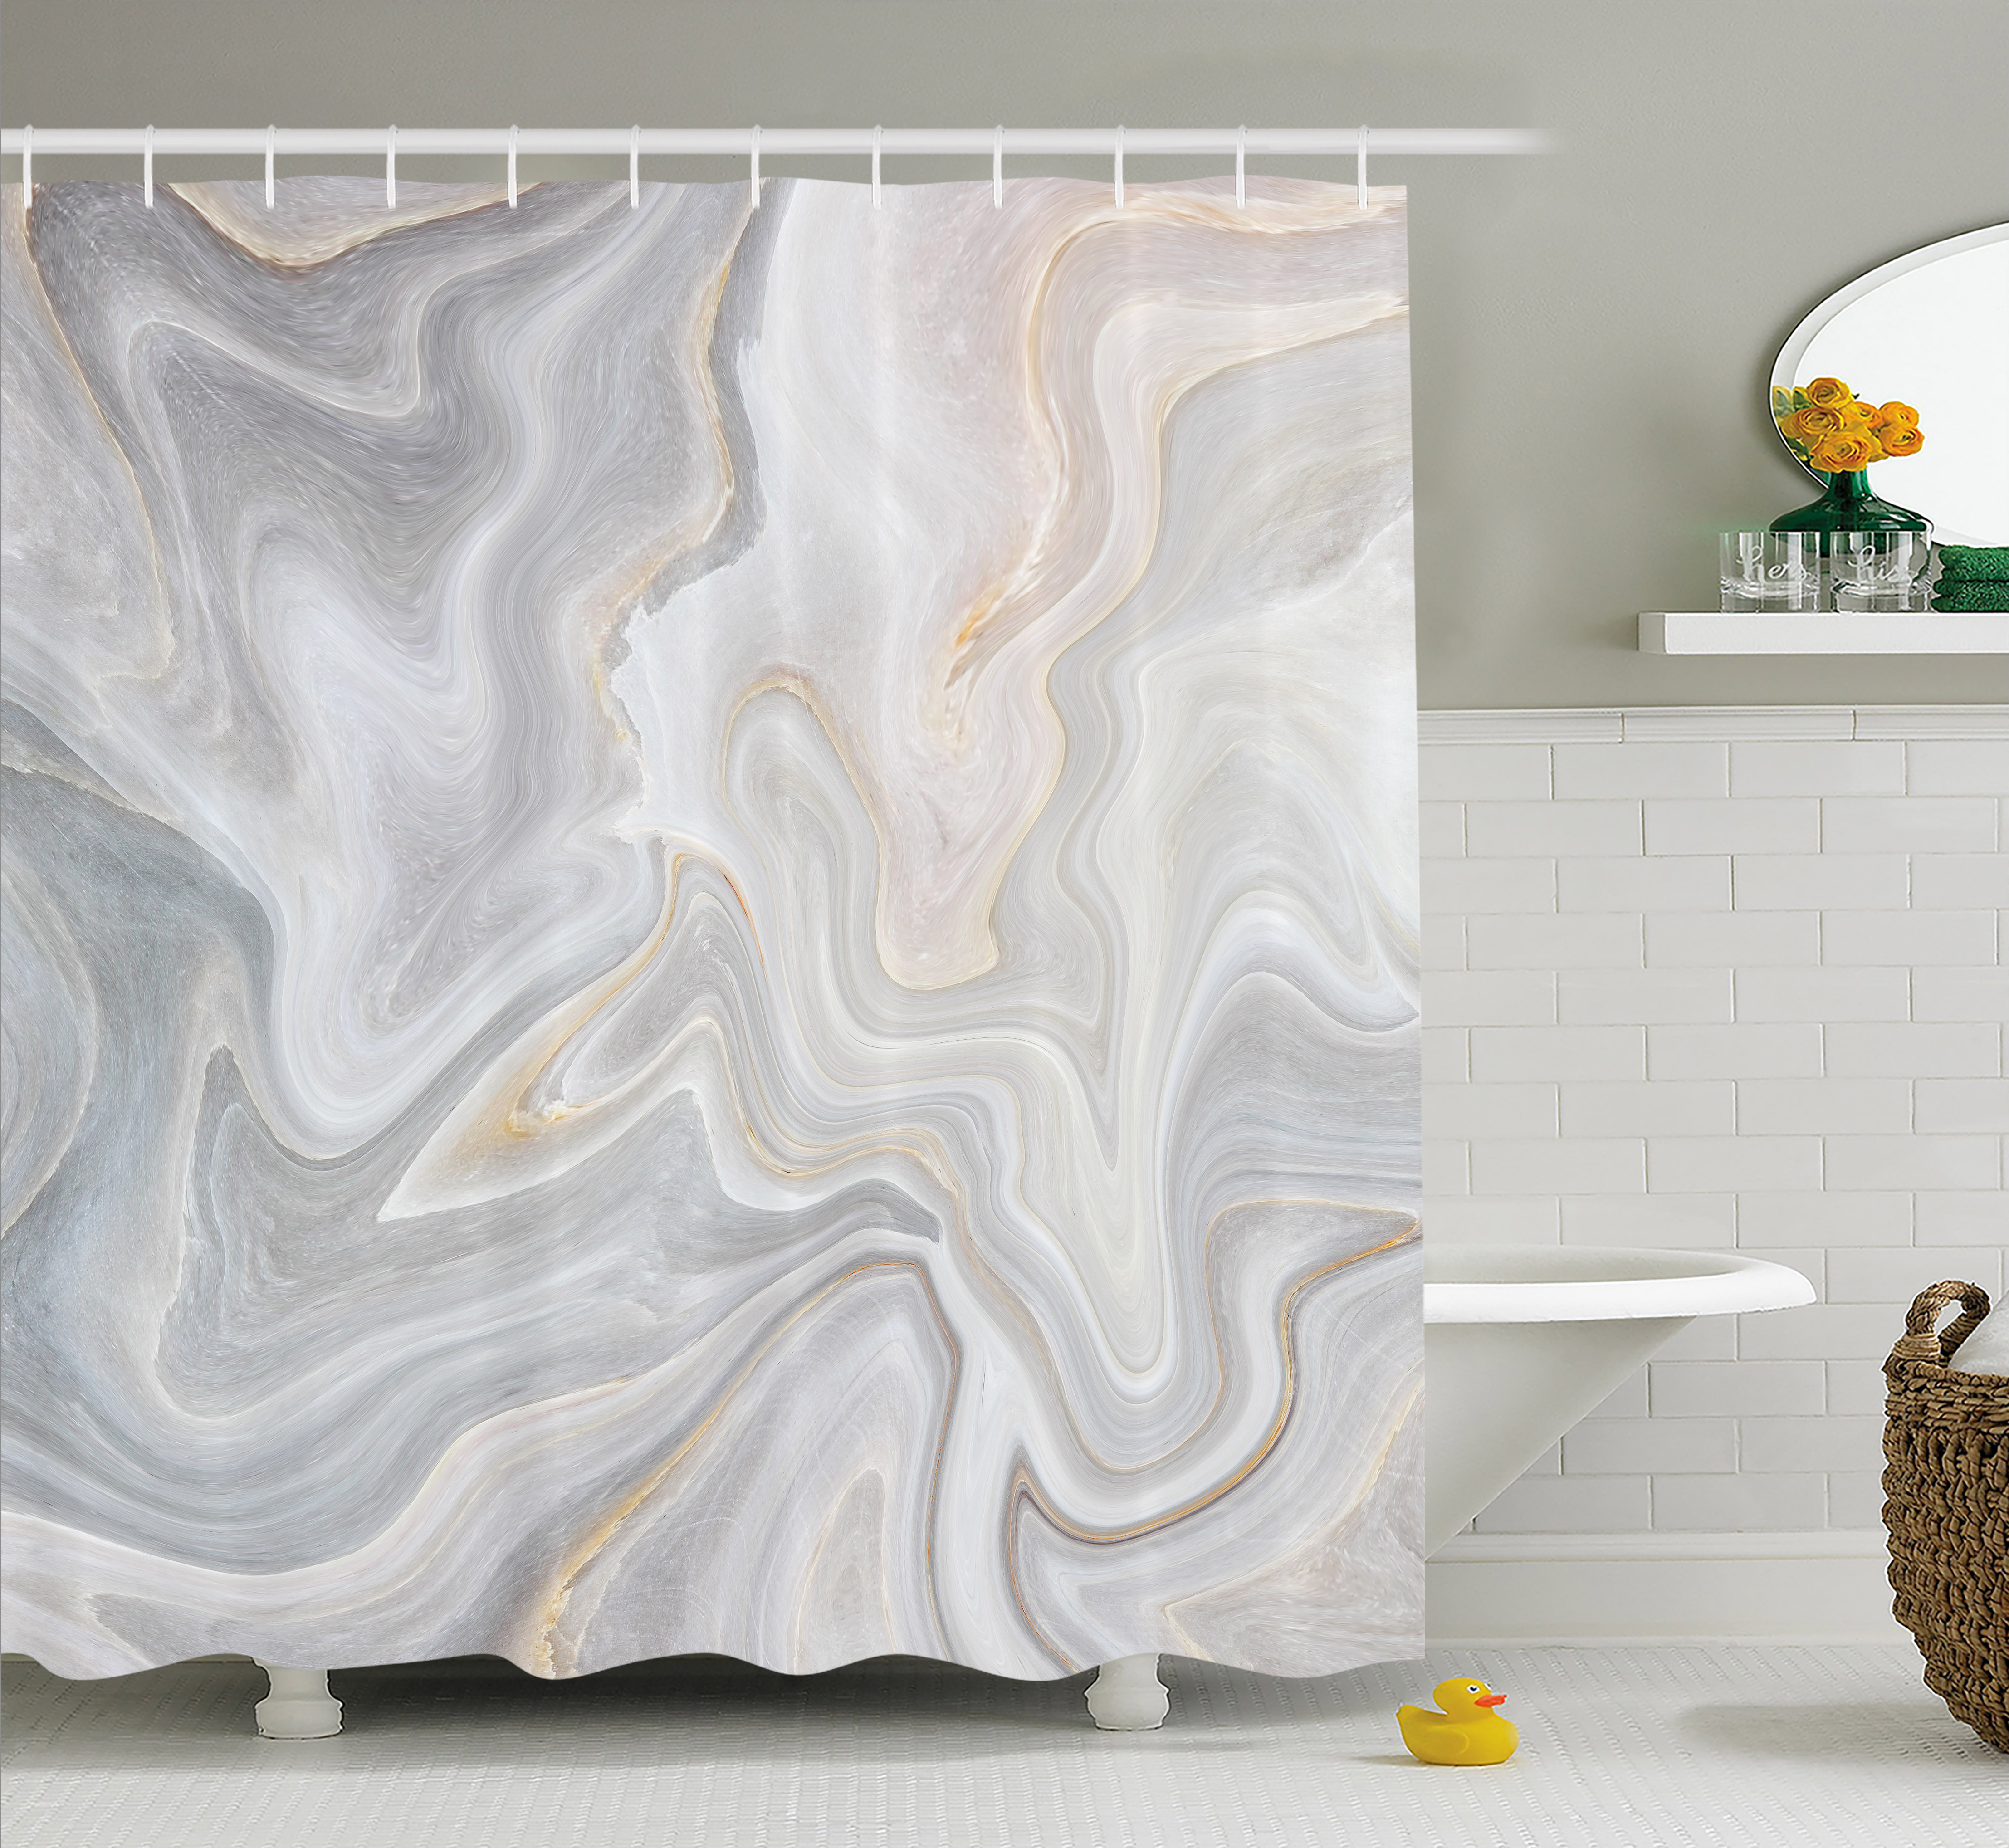 Marble Shower Curtain Nature Stone Color Splash Paintbrush Technique Stylish Vintage Design Fabric Bathroom Set With Hooks Pale Grey Sand Brown